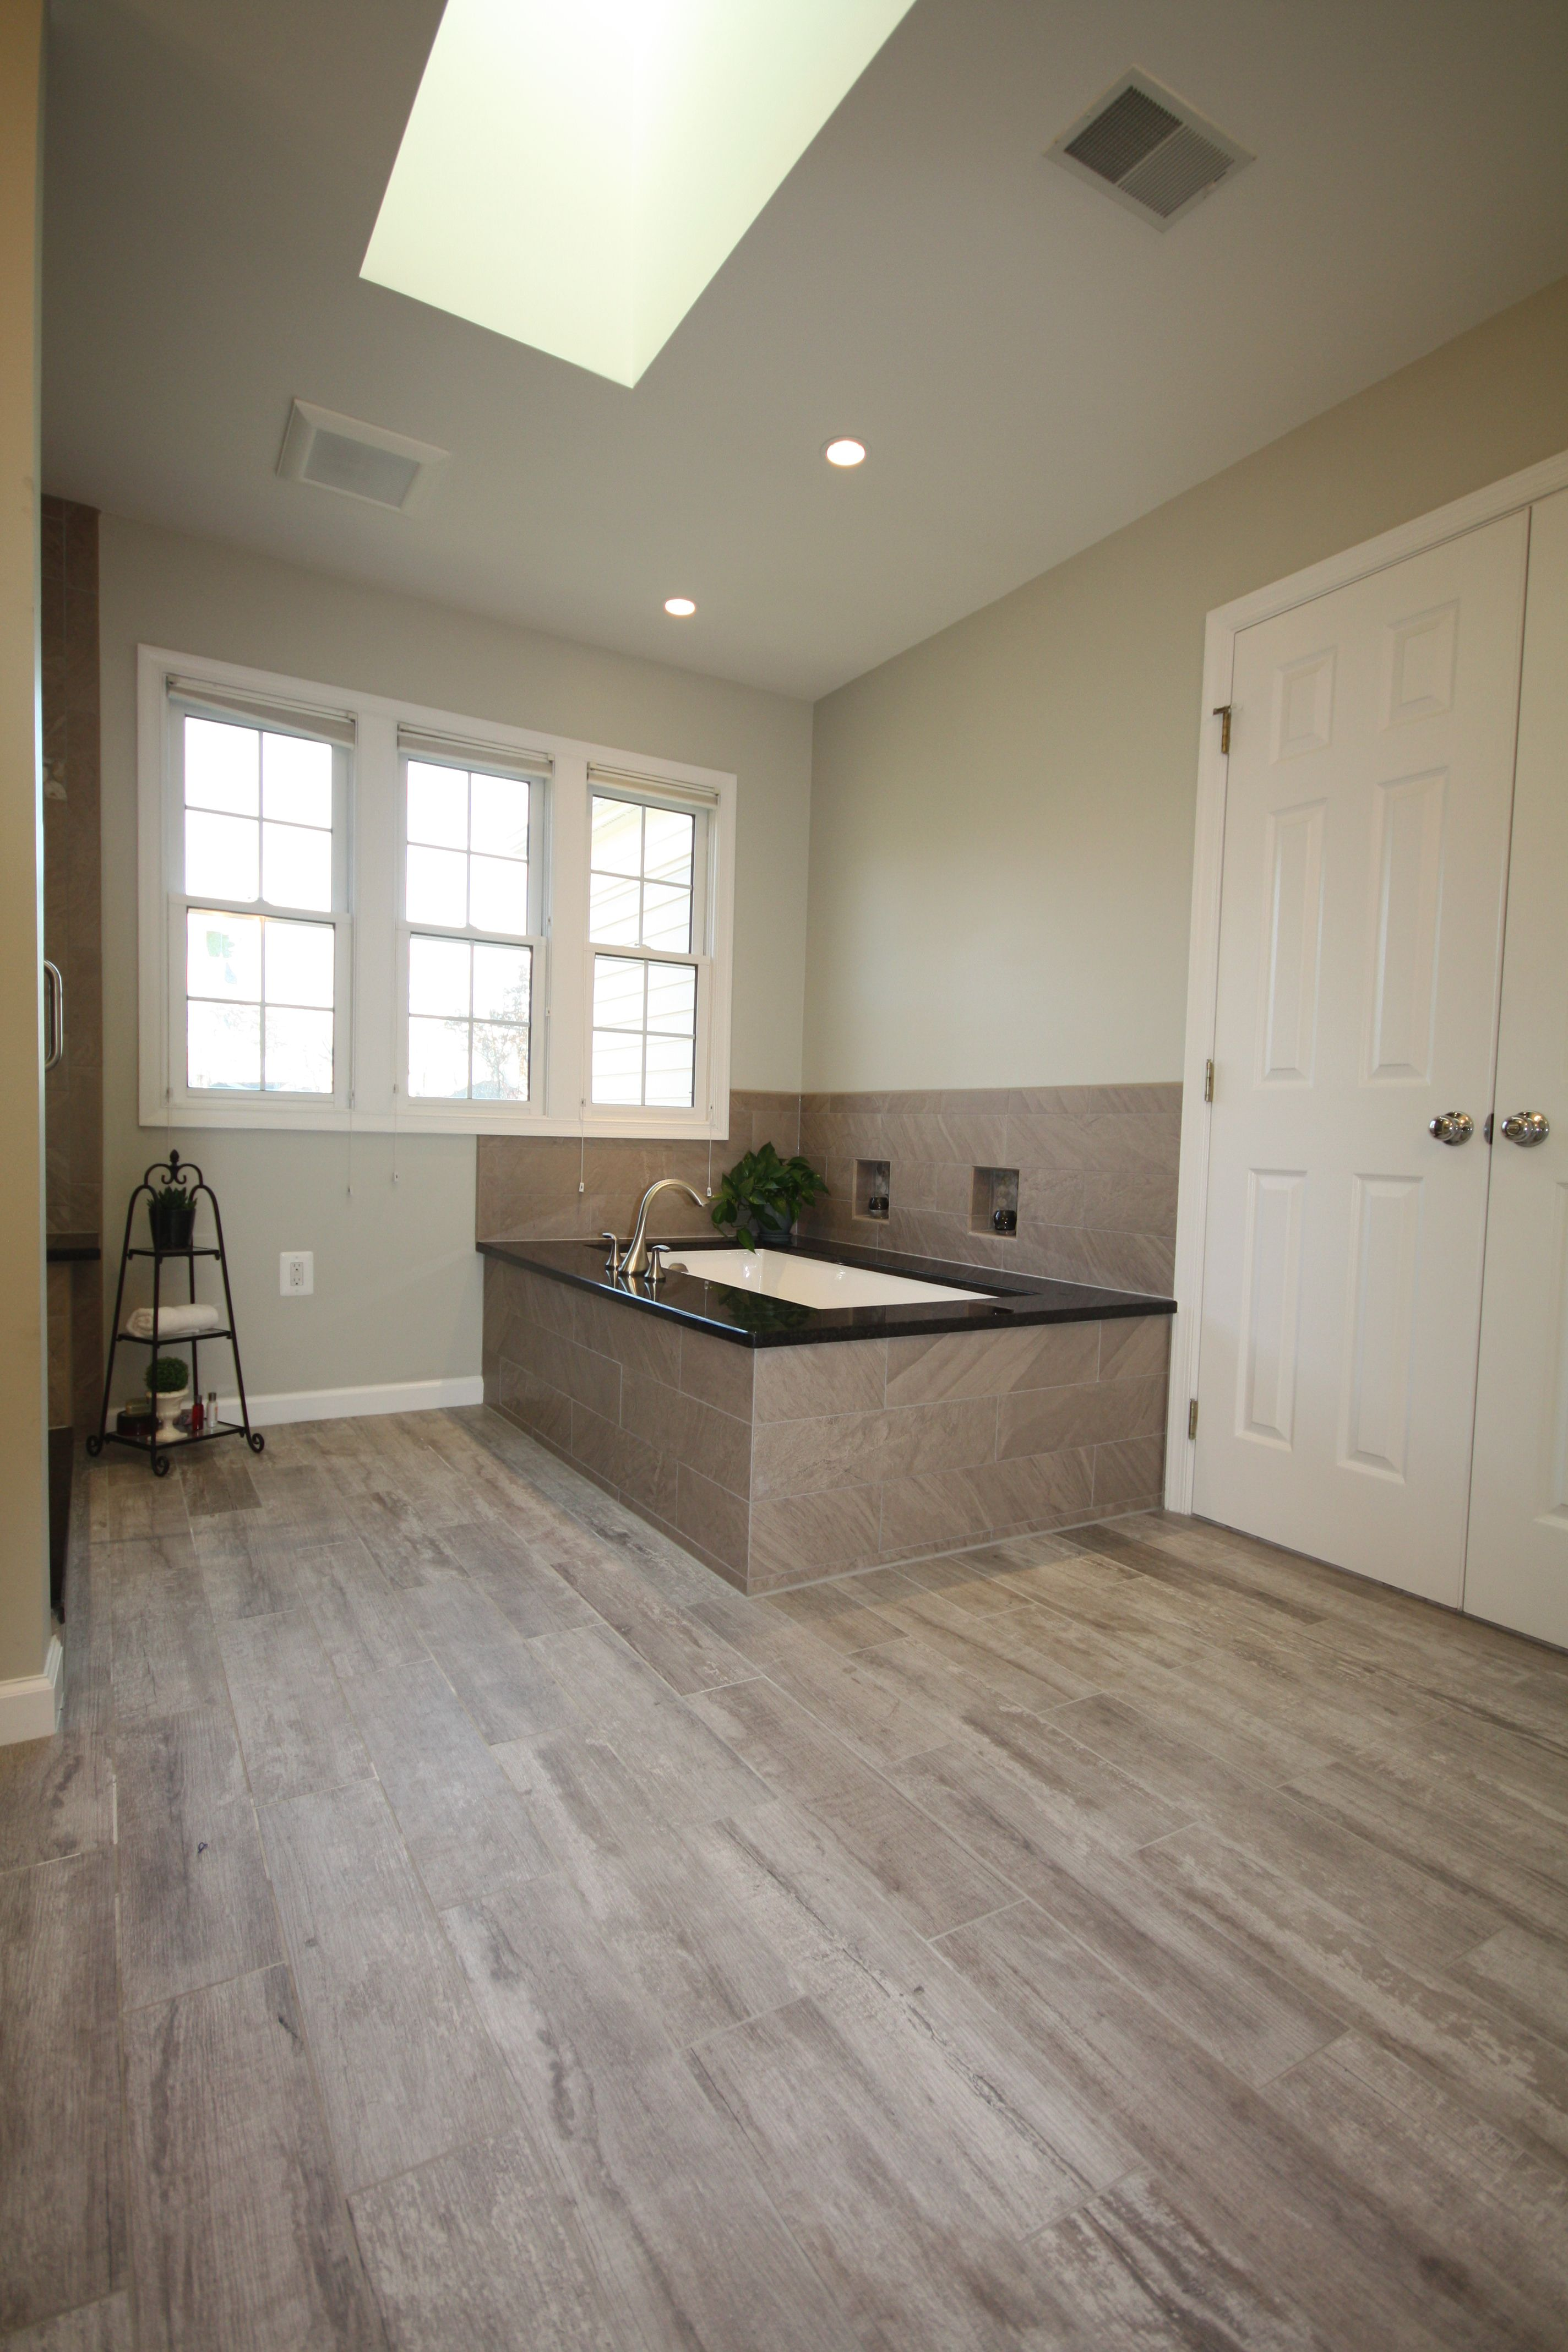 Porcelain tile to look like wood planks for the master bathroom porcelain tile to look like wood planks for the master bathroom suite decor dailygadgetfo Images